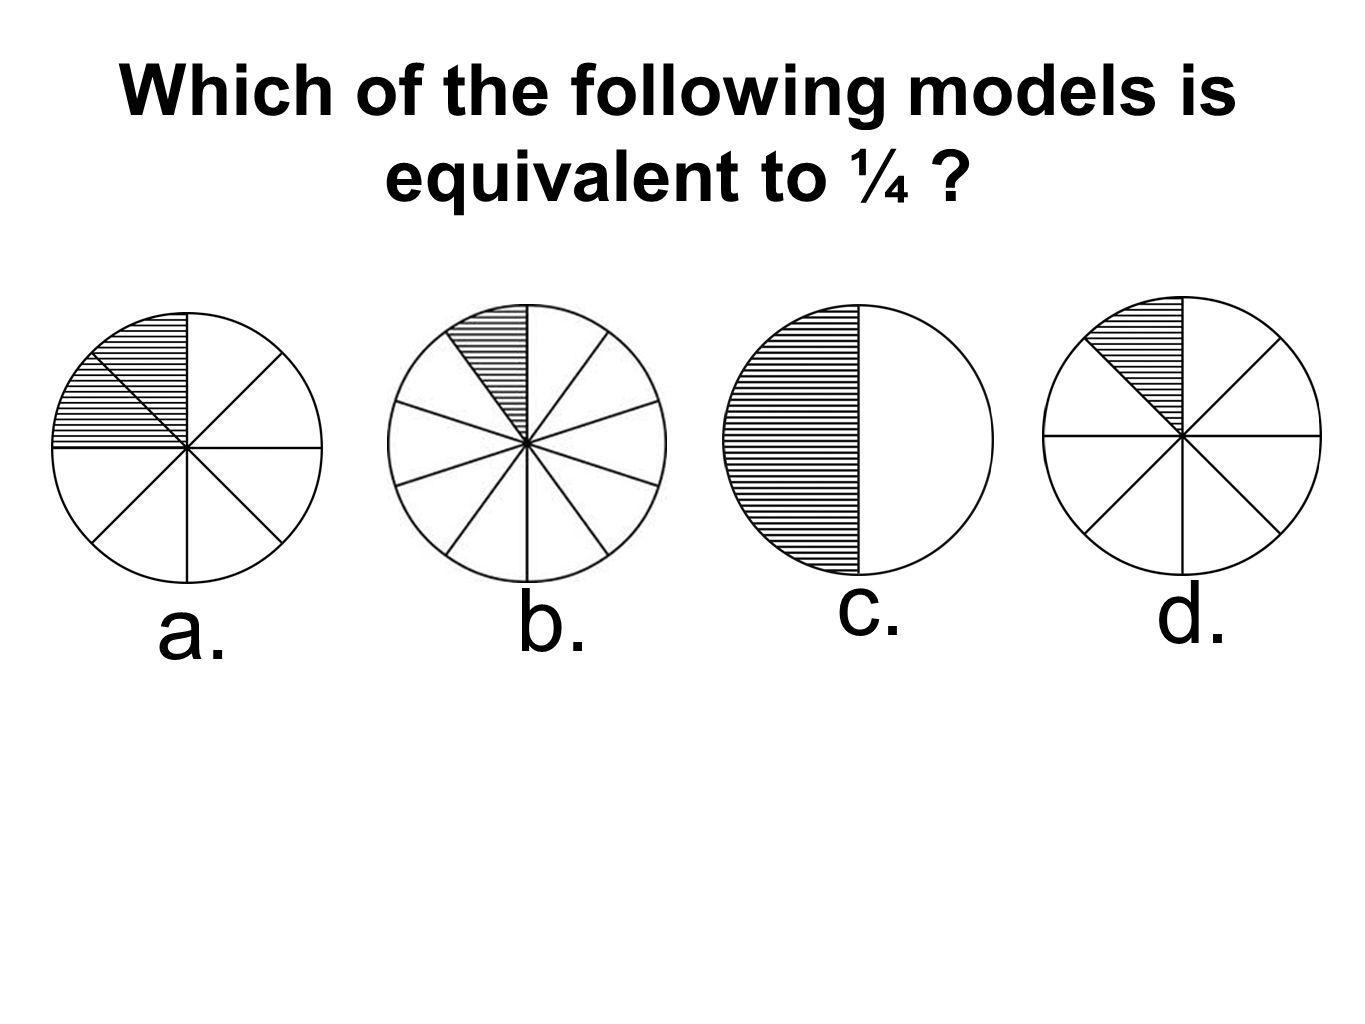 Which of the following models is equivalent to ¼